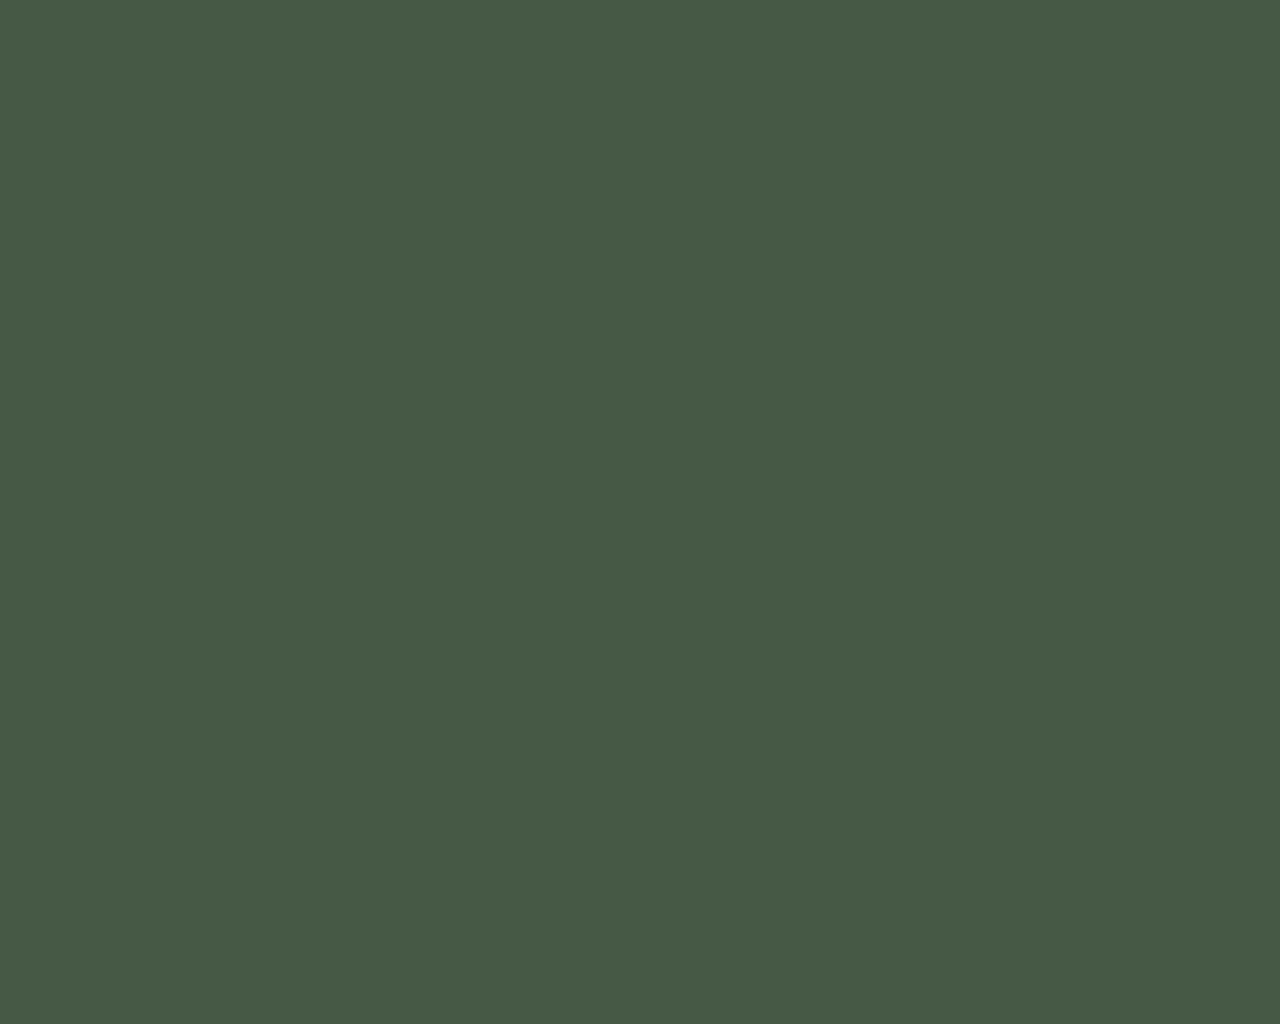 1280x1024 Gray-asparagus Solid Color Background